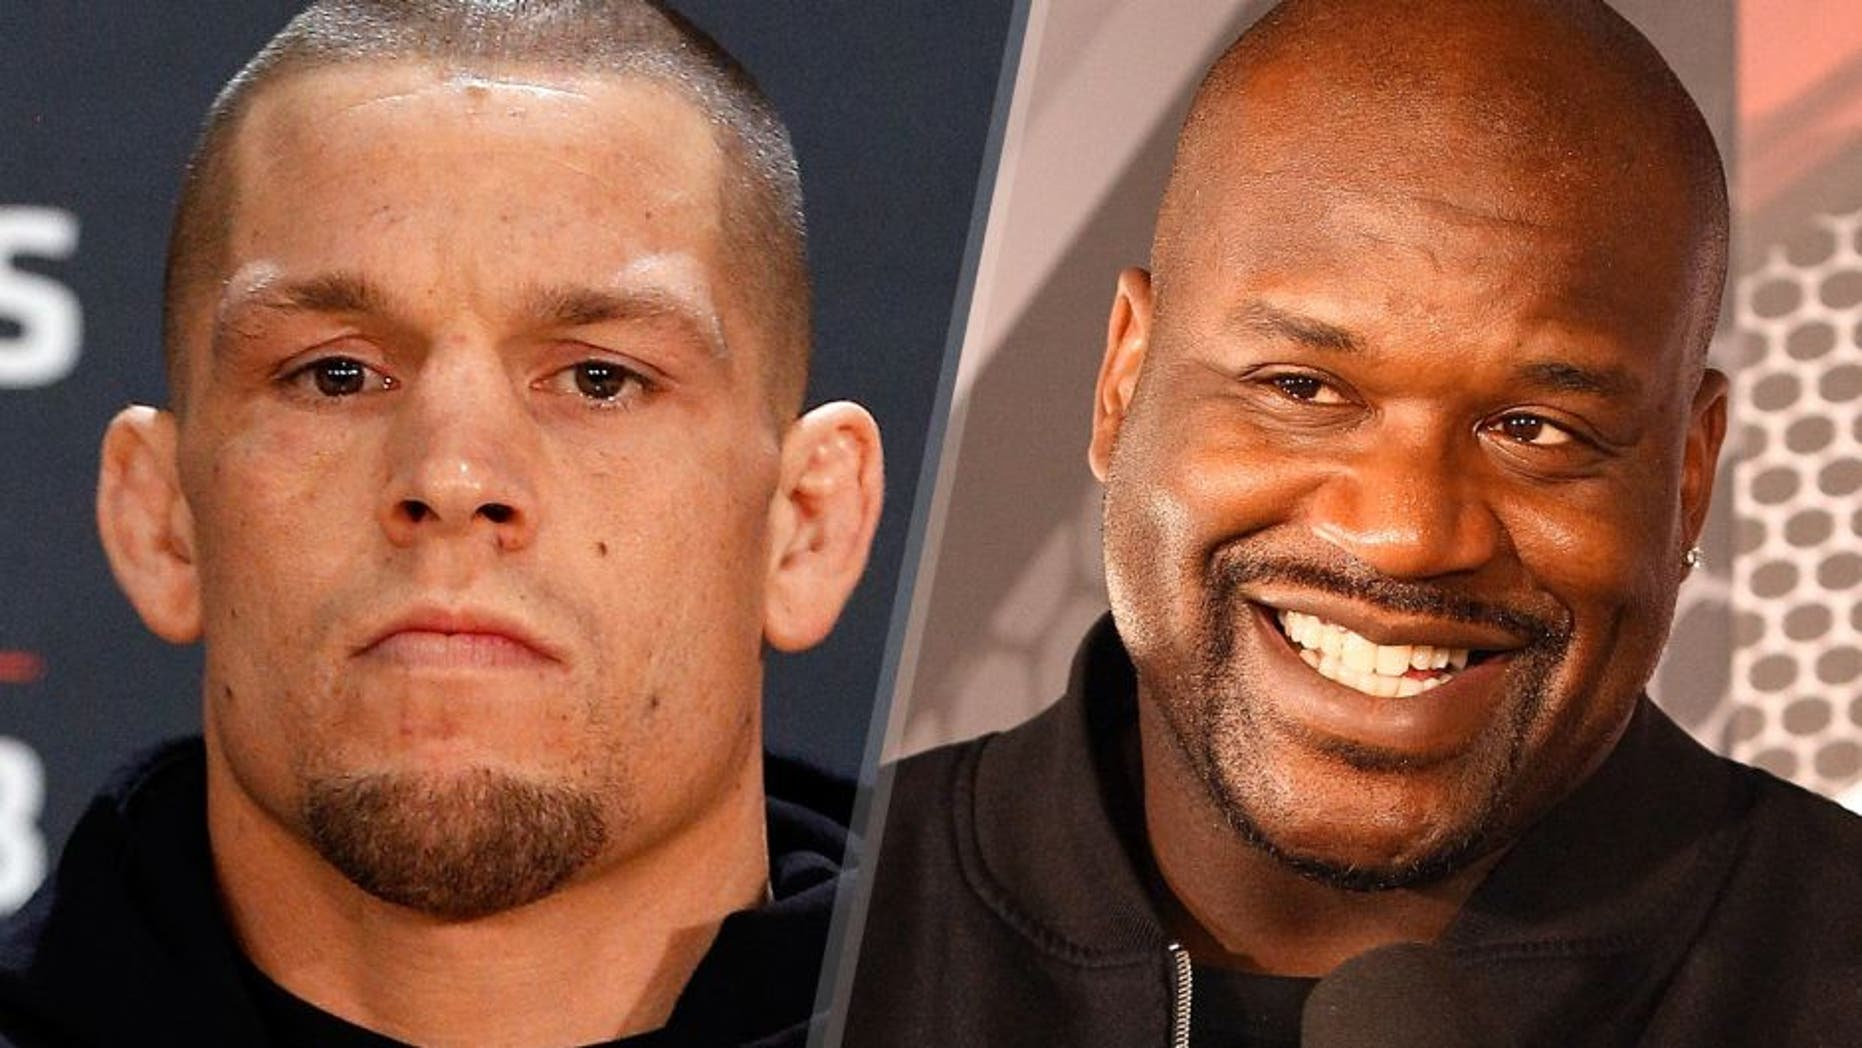 Nate Diaz poses for photos during the UFC Ultimate Media Day at the US Airways Center on December 11, 2014 in Phoenix, Arizona. (Photo by Josh Hedges/Zuffa LLC/Zuffa LLC via Getty Images) NBA legend Shaquille O'Neal is interviewed backstage during the FOX UFC Saturday event at the Amway Center on April 19, 2014 in Orlando, Florida. (Photo by Mike Roach/Zuffa LLC/Zuffa LLC via Getty Images)